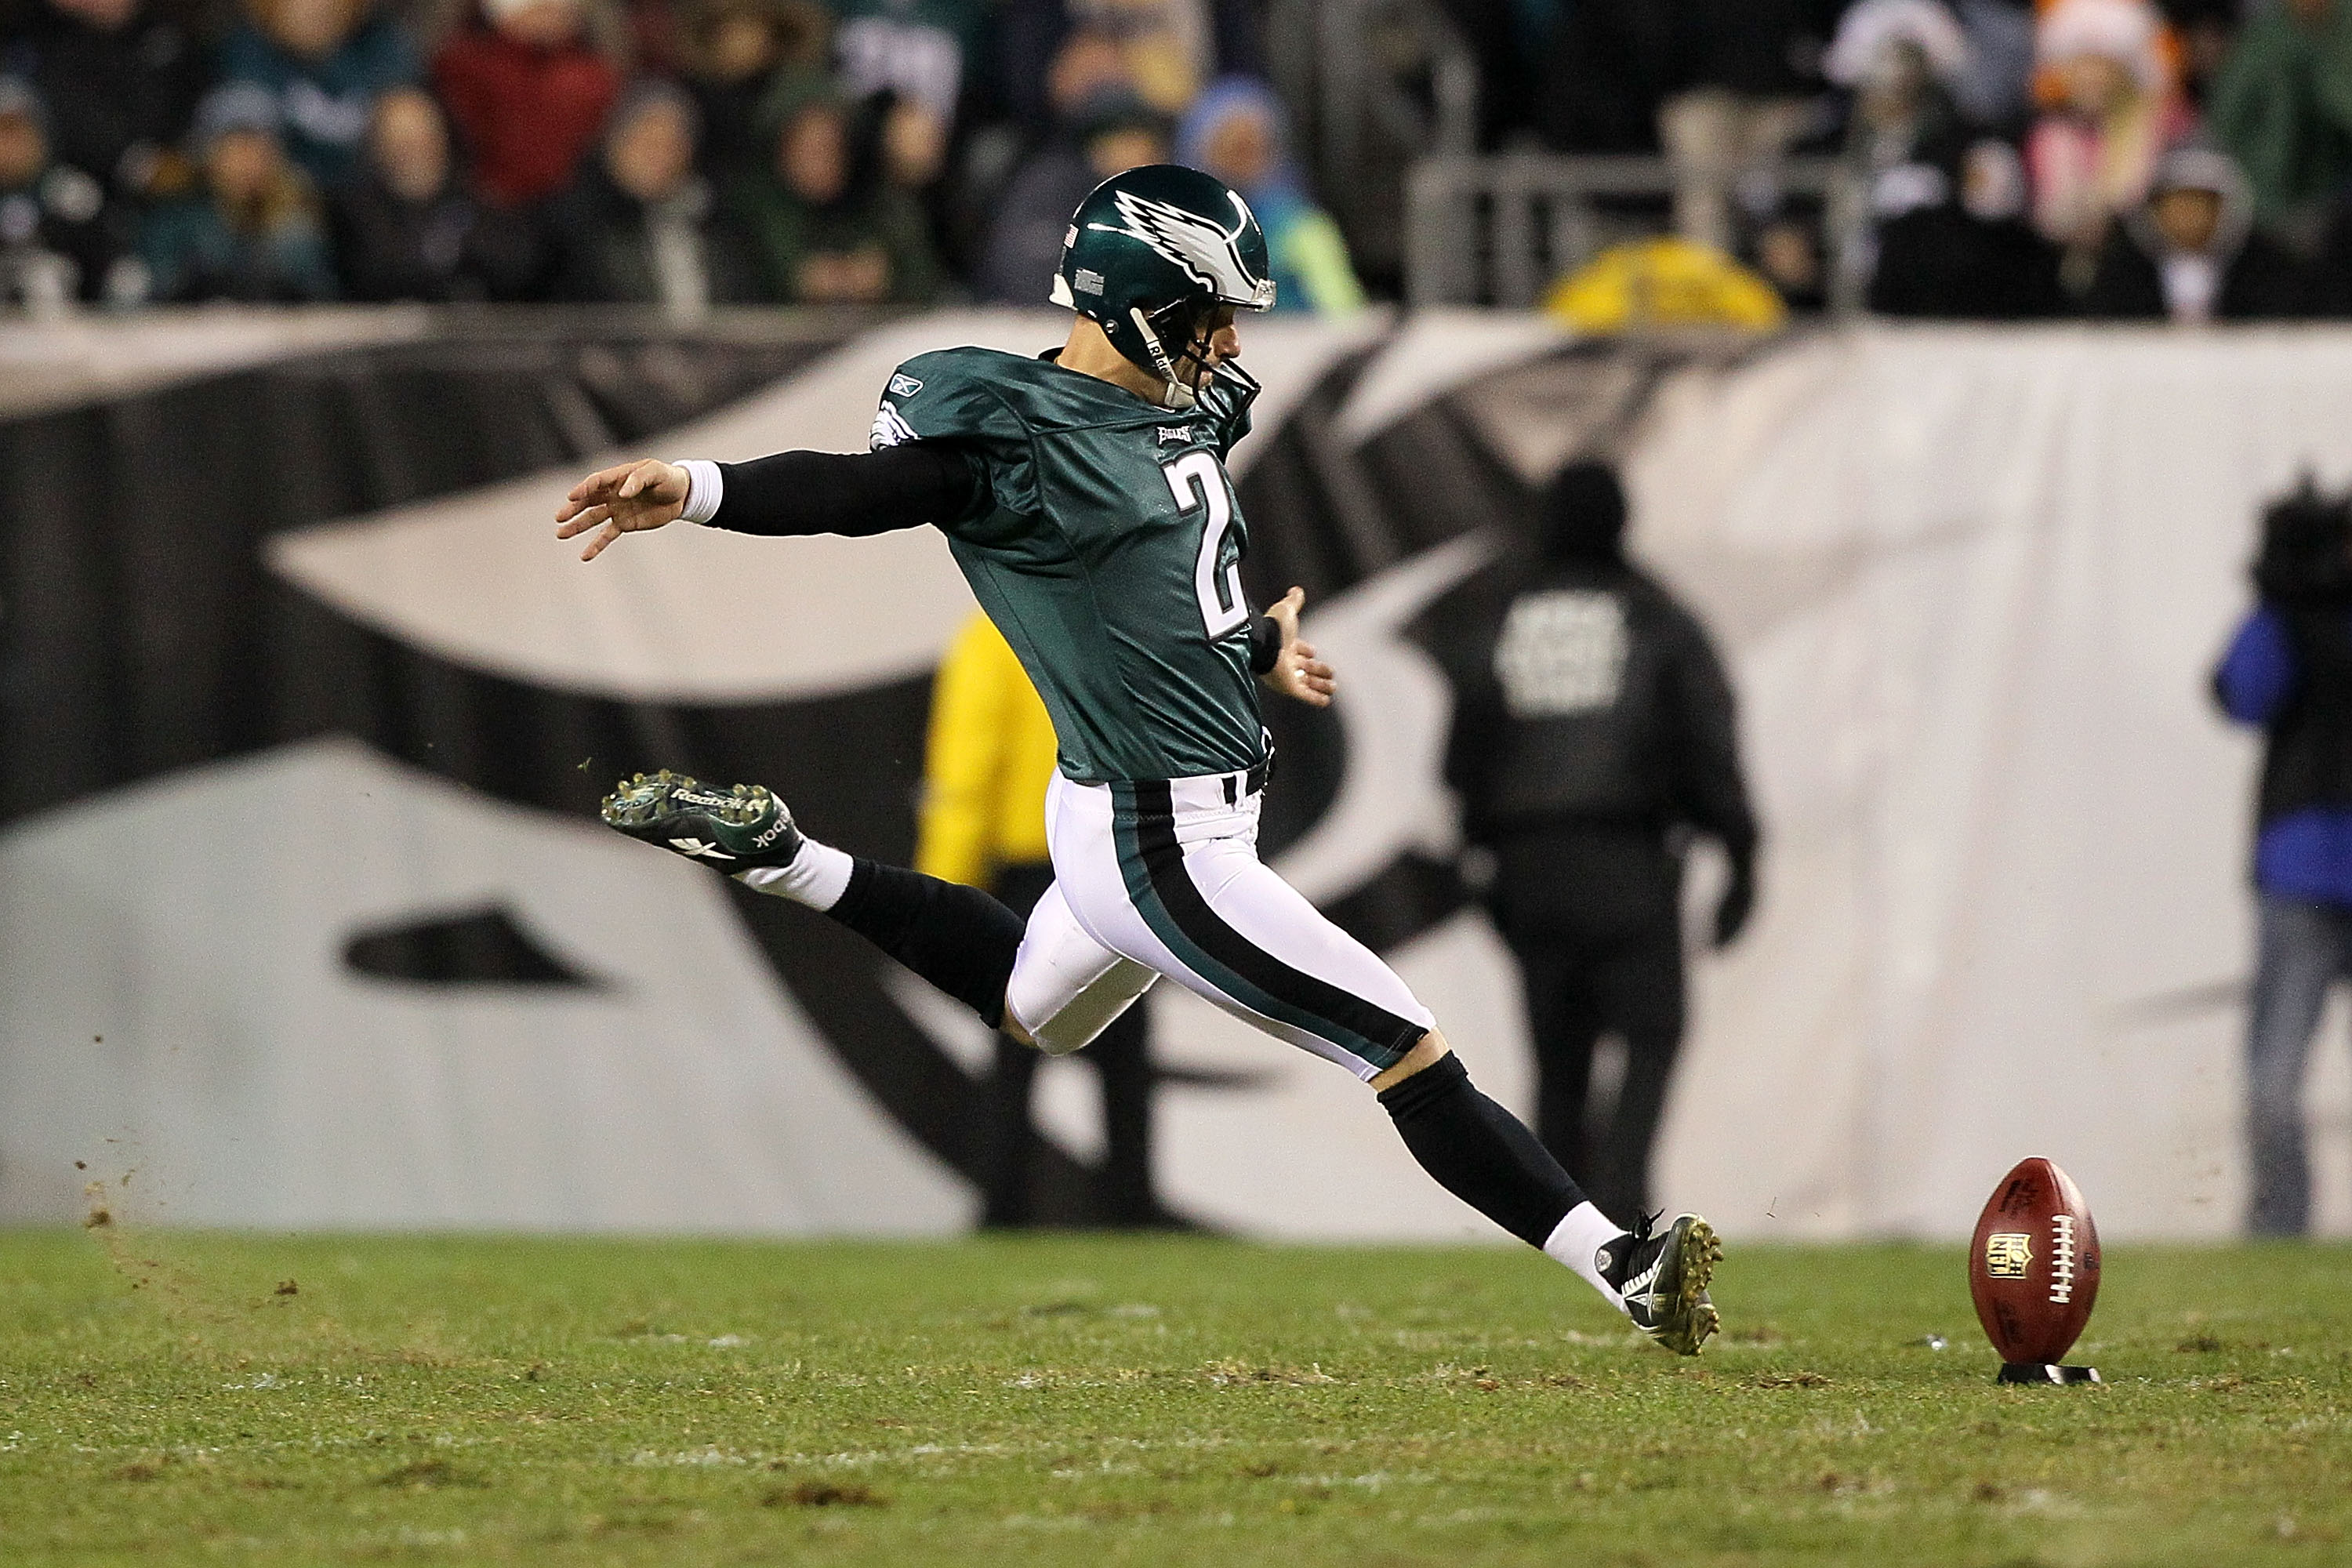 PHILADELPHIA, PA - DECEMBER 02:  Place kicker David Akers #2 of the Philadelphia Eagles kicks the ball off against the Houston Texans at Lincoln Financial Field on December 2, 2010 in Philadelphia, Pennsylvania.  (Photo by Jim McIsaac/Getty Images)